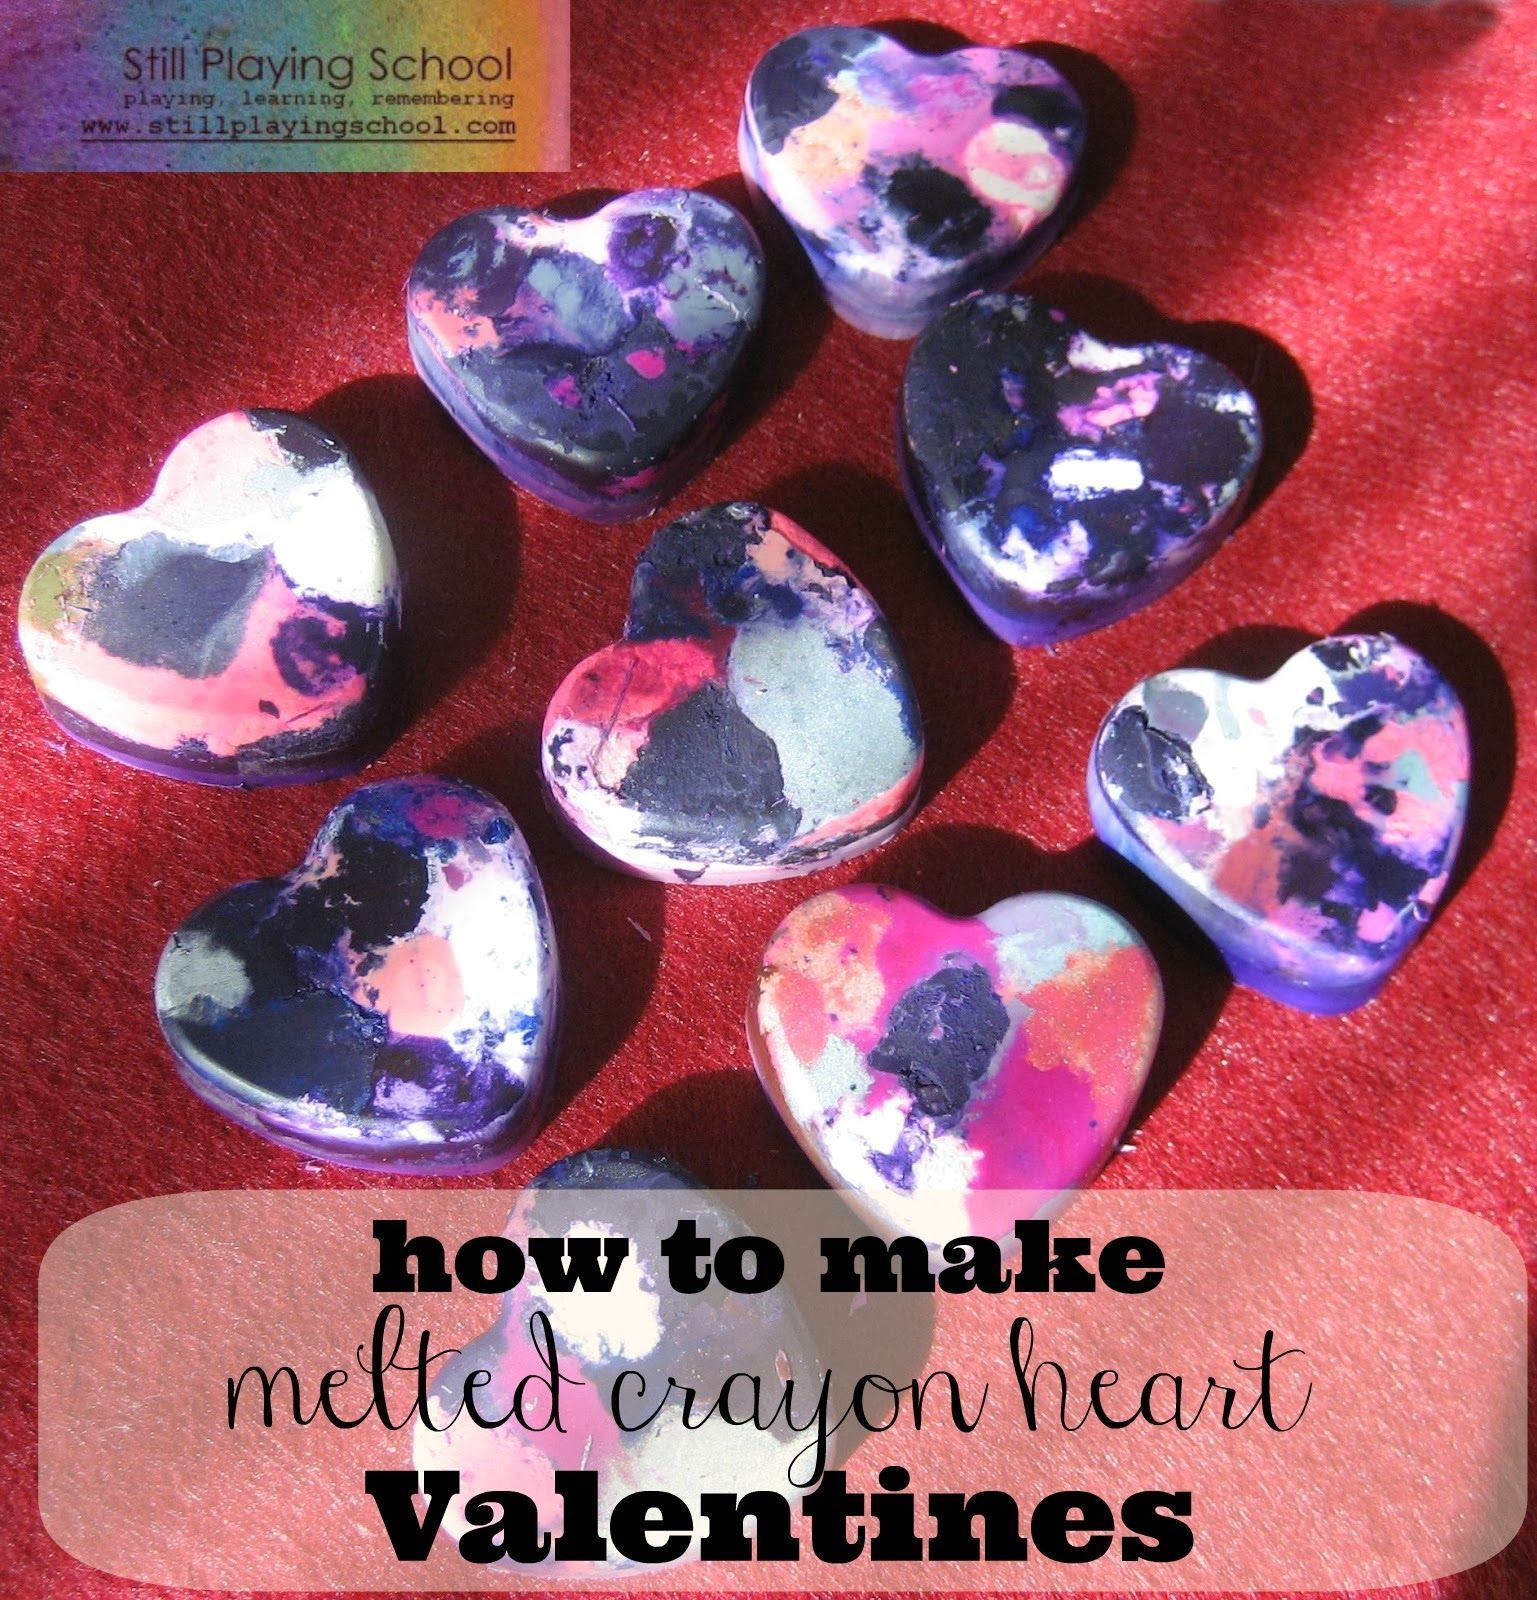 Small Gestures, Lasting Impacts #crayonheart Still Playing School: How to Make Melted Crayon Heart Valentines #crayonheart Small Gestures, Lasting Impacts #crayonheart Still Playing School: How to Make Melted Crayon Heart Valentines #crayonheart Small Gestures, Lasting Impacts #crayonheart Still Playing School: How to Make Melted Crayon Heart Valentines #crayonheart Small Gestures, Lasting Impacts #crayonheart Still Playing School: How to Make Melted Crayon Heart Valentines #crayonheart